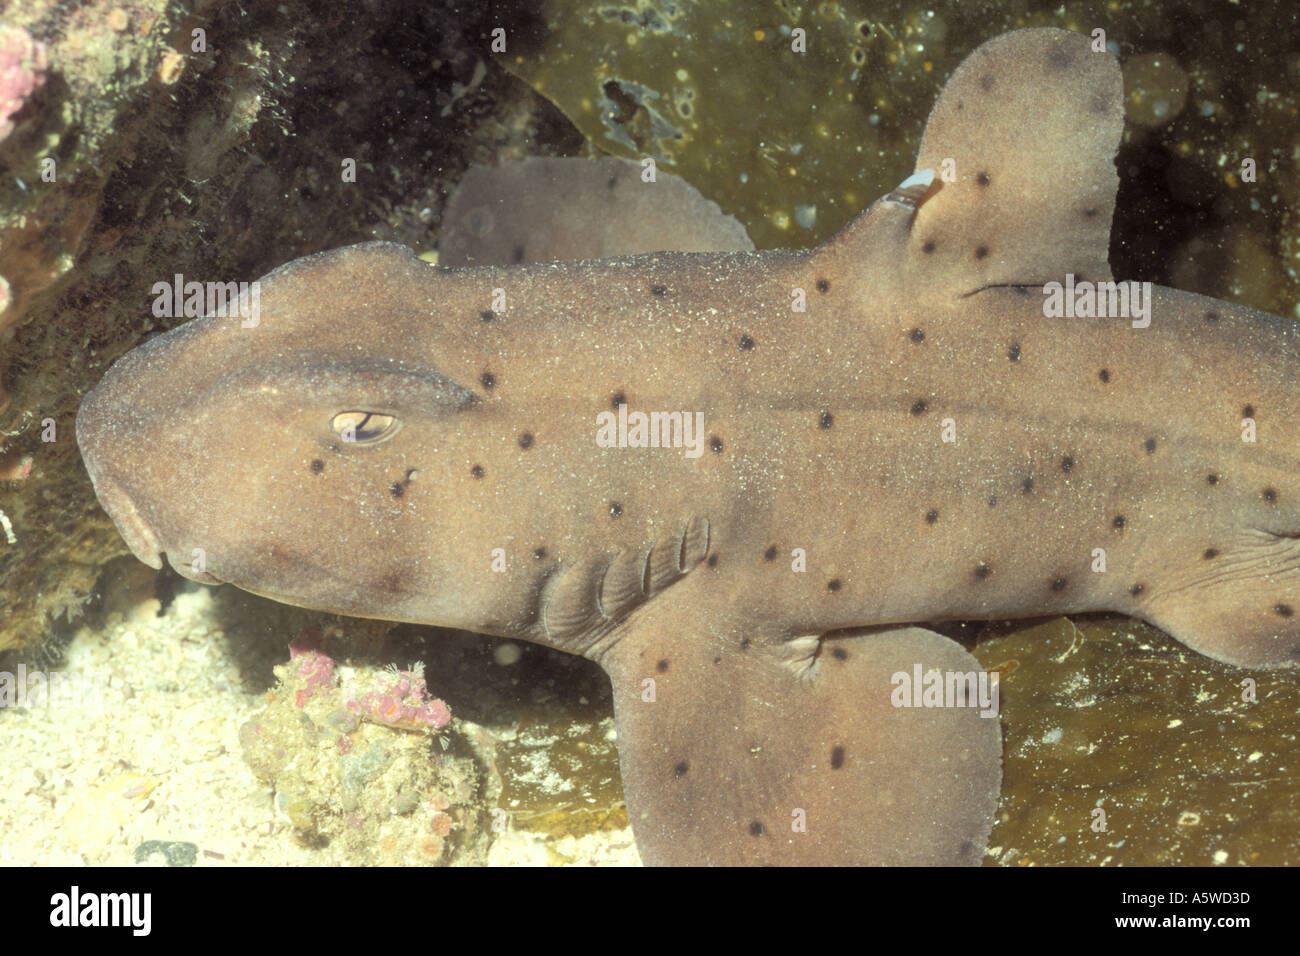 Horn Shark note horn by dorsal fin Heterodontus francisci Catalina Island California - Stock Image